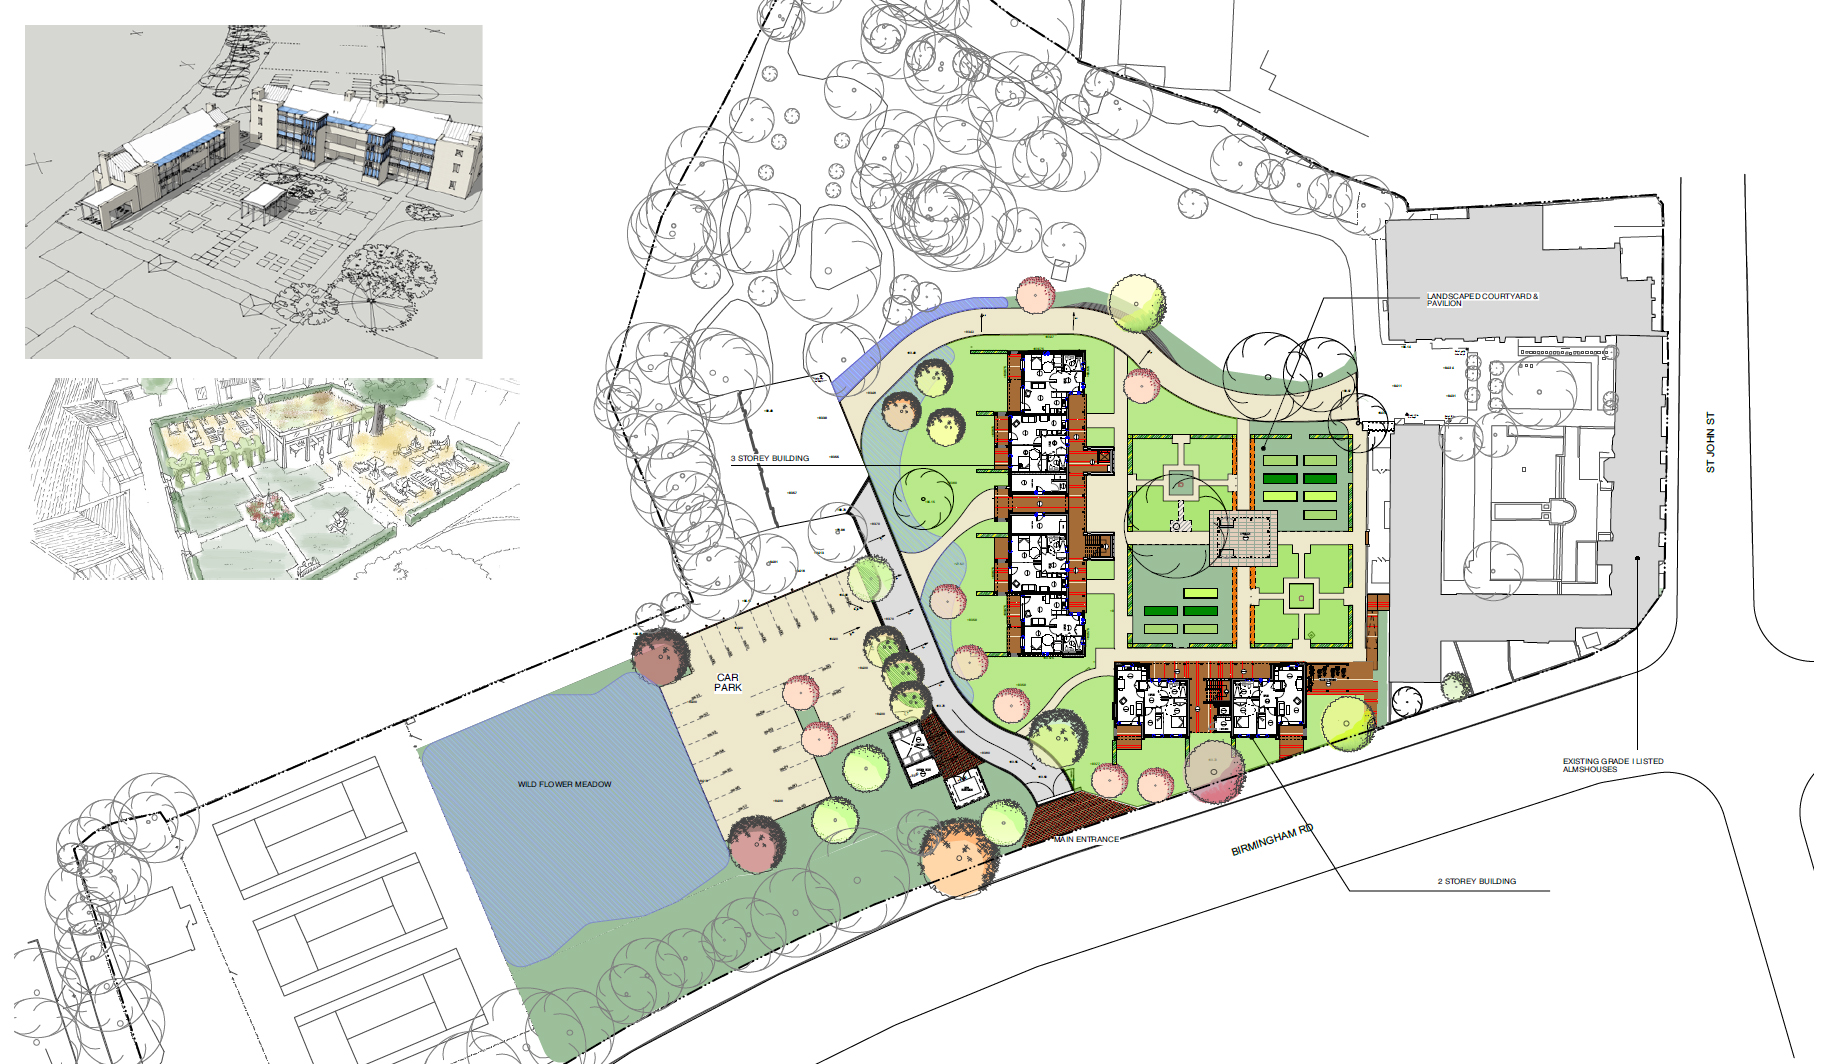 St Johns Almhouses Site Plan